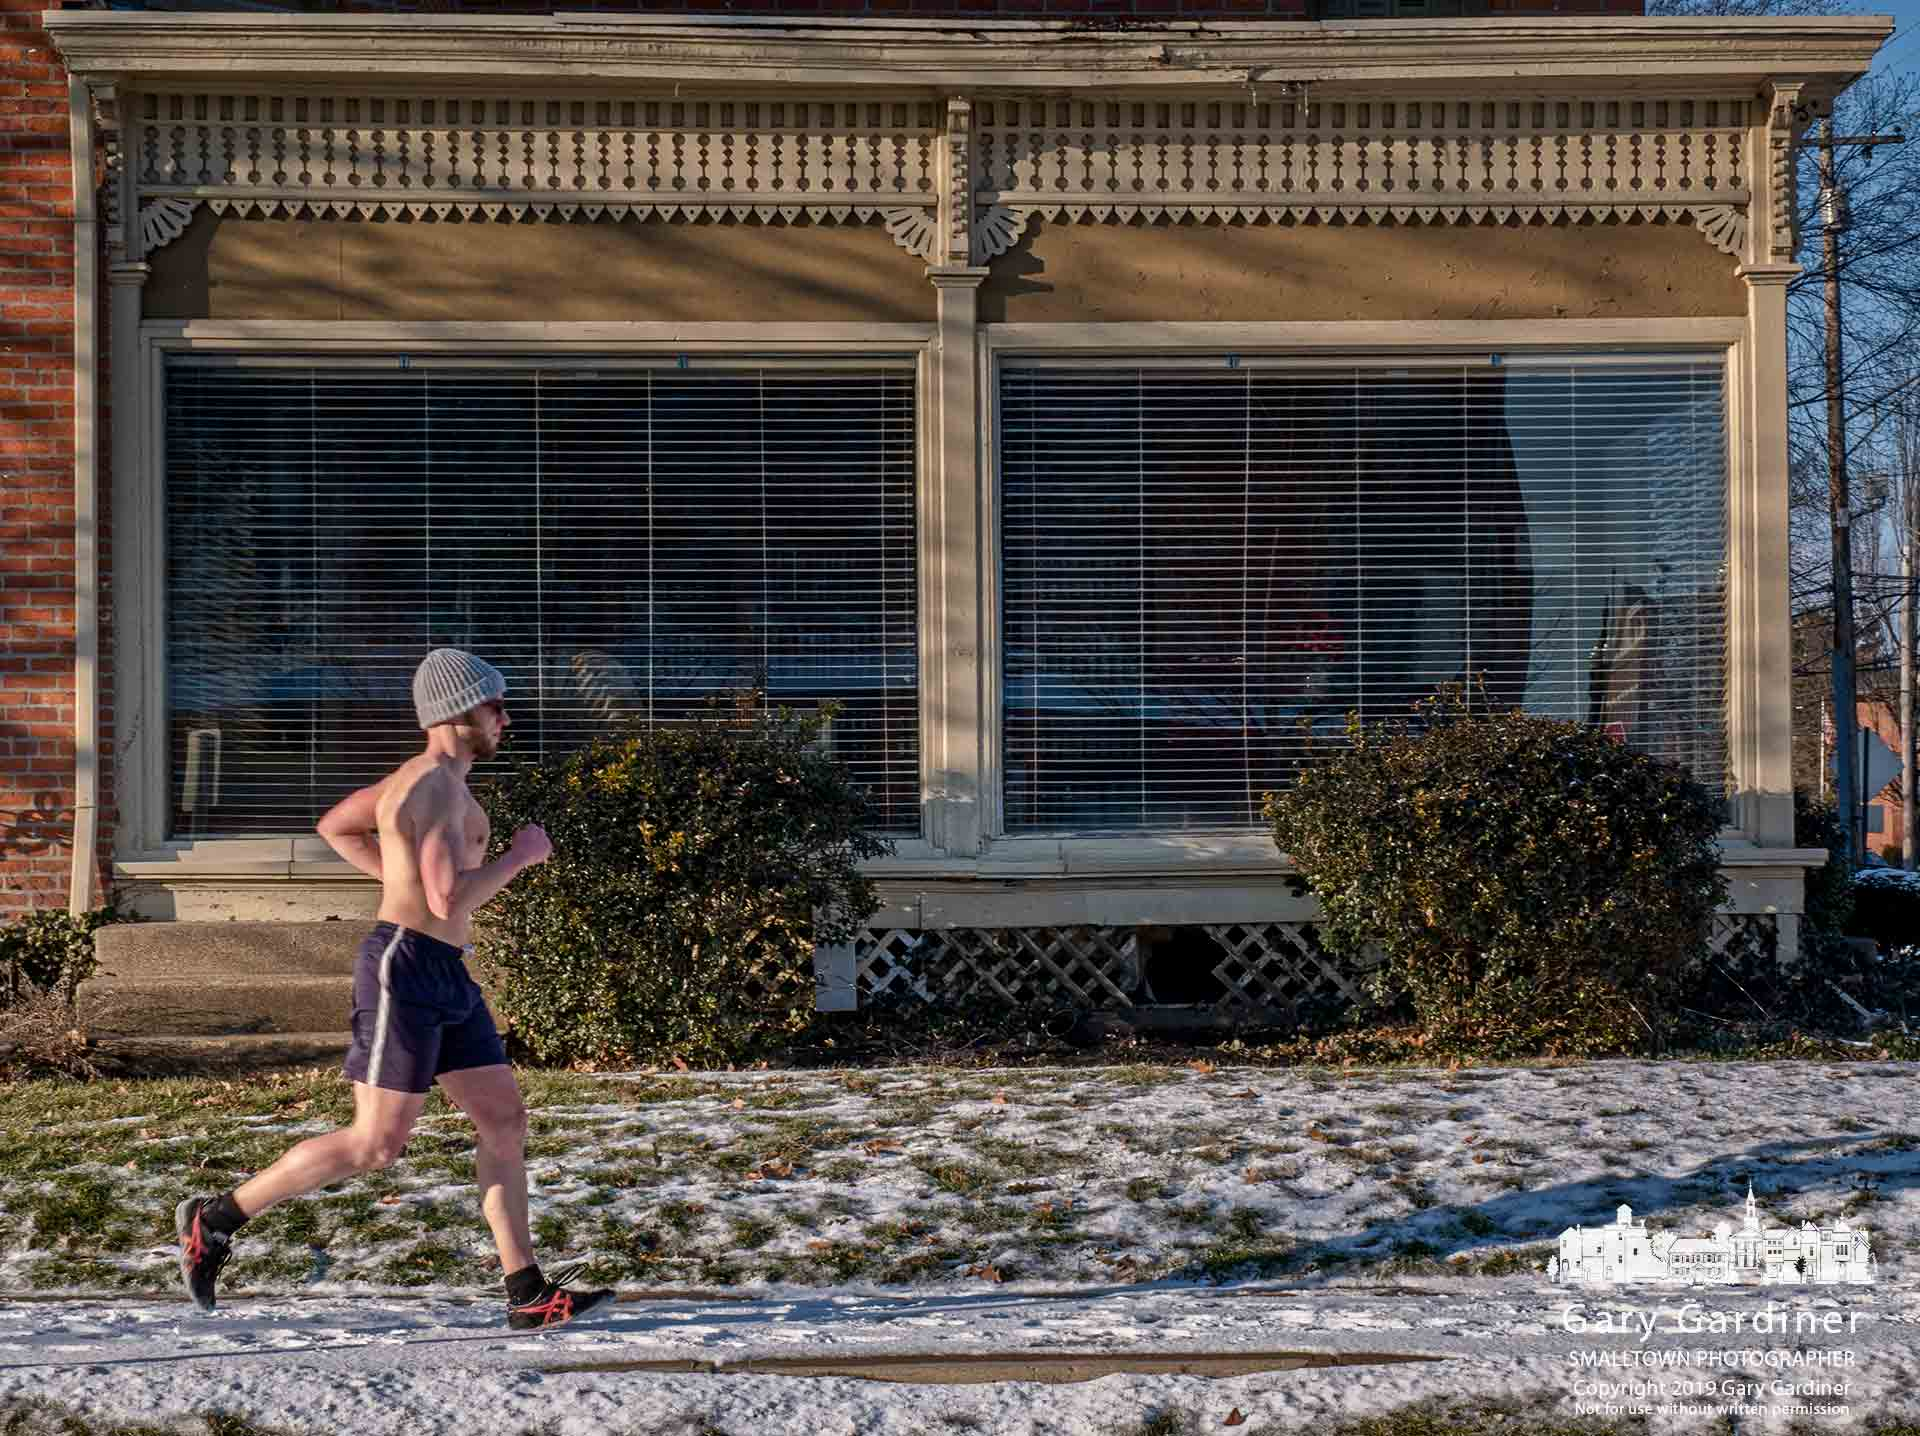 Theodore Gorman runs without a shirt with the temperature in the low 20s as he nears completion of his afternoon exercise. My Final Photo for Jan. 27, 2019.